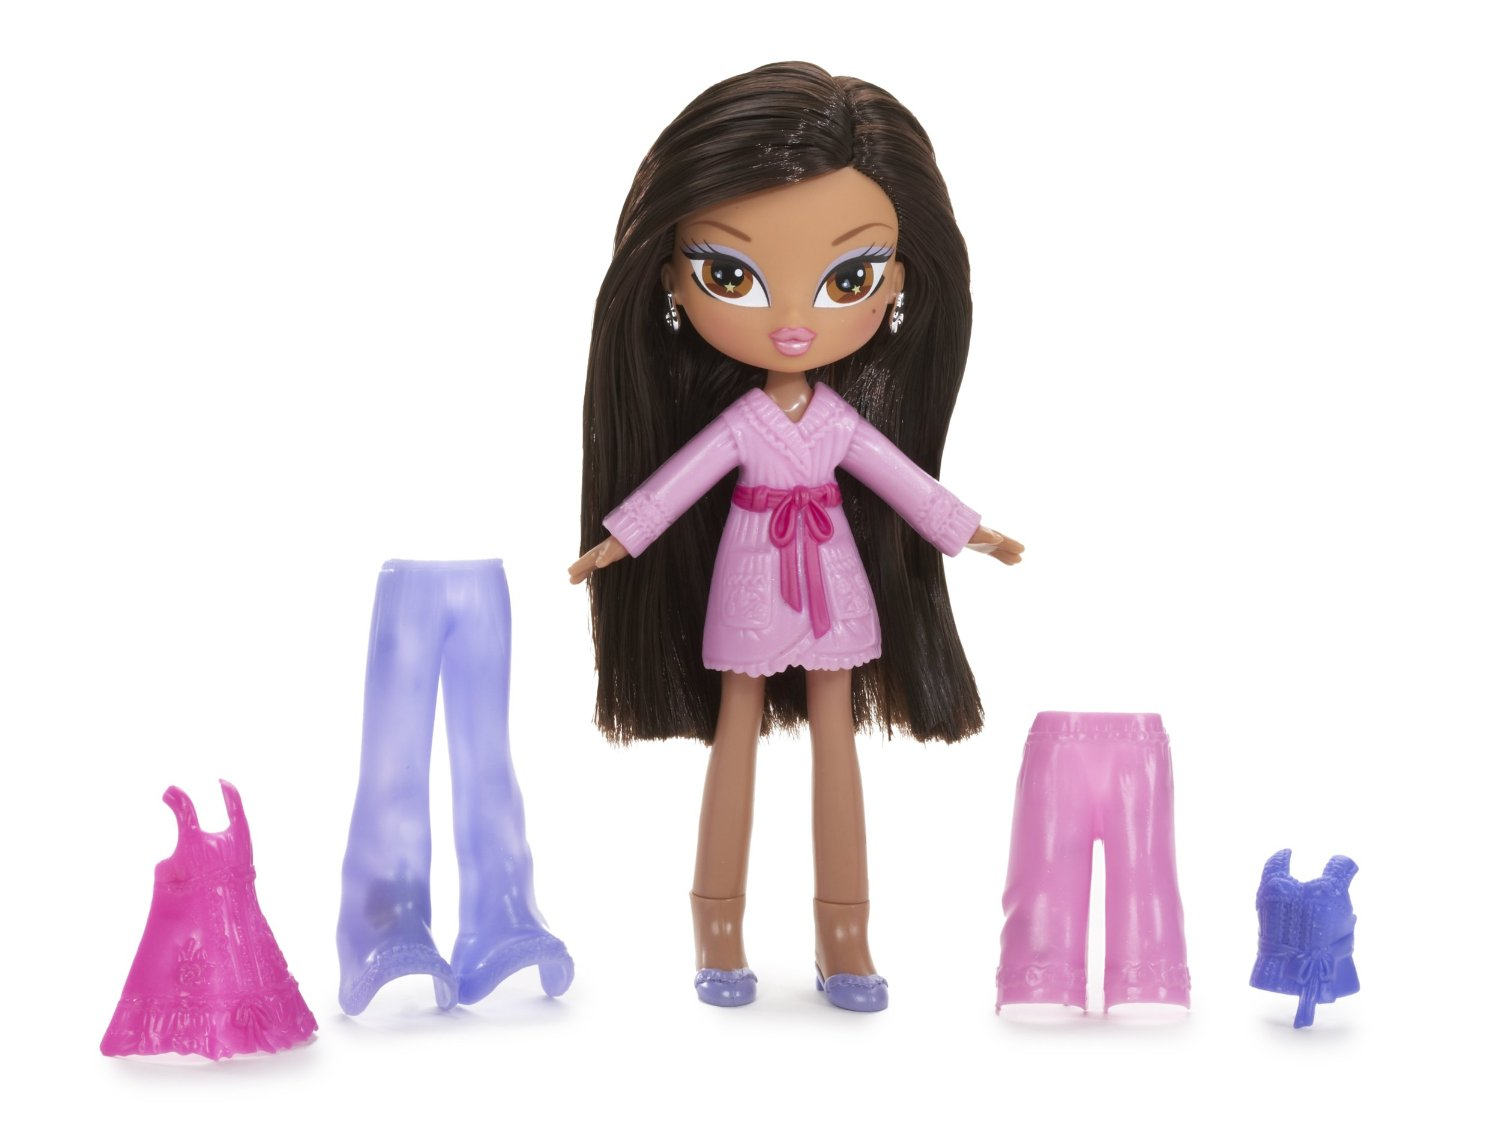 Bratz Kidz Fairy Tales Dolls Bratz Kidz Snap-On Sleepover